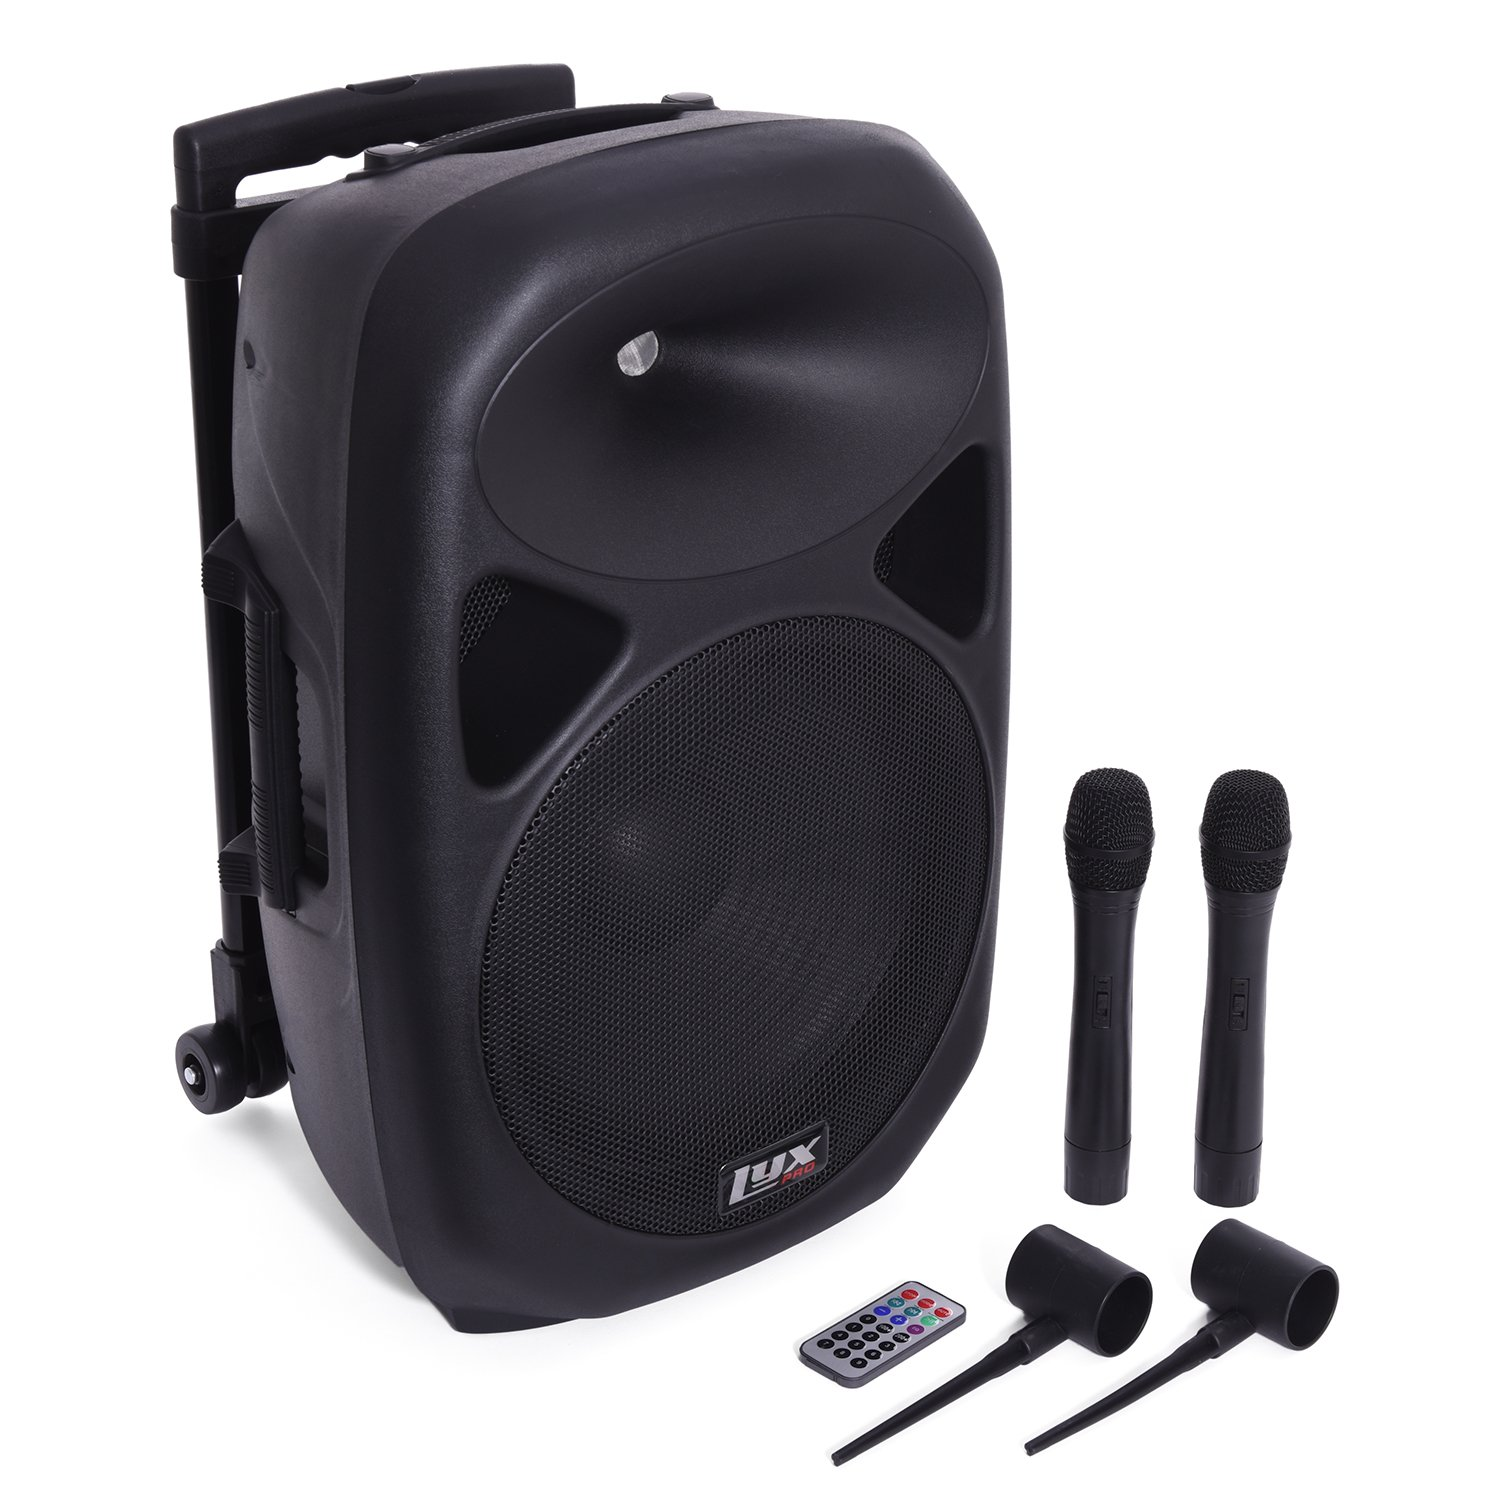 LyxPro SPA-12BAT Battery Powered Active Speaker Portable PA System Built In EQ & Rechargeable Battery, Bluetooth, MP3, USB, SD, 1/4'', 3.5mm by LyxPro (Image #4)